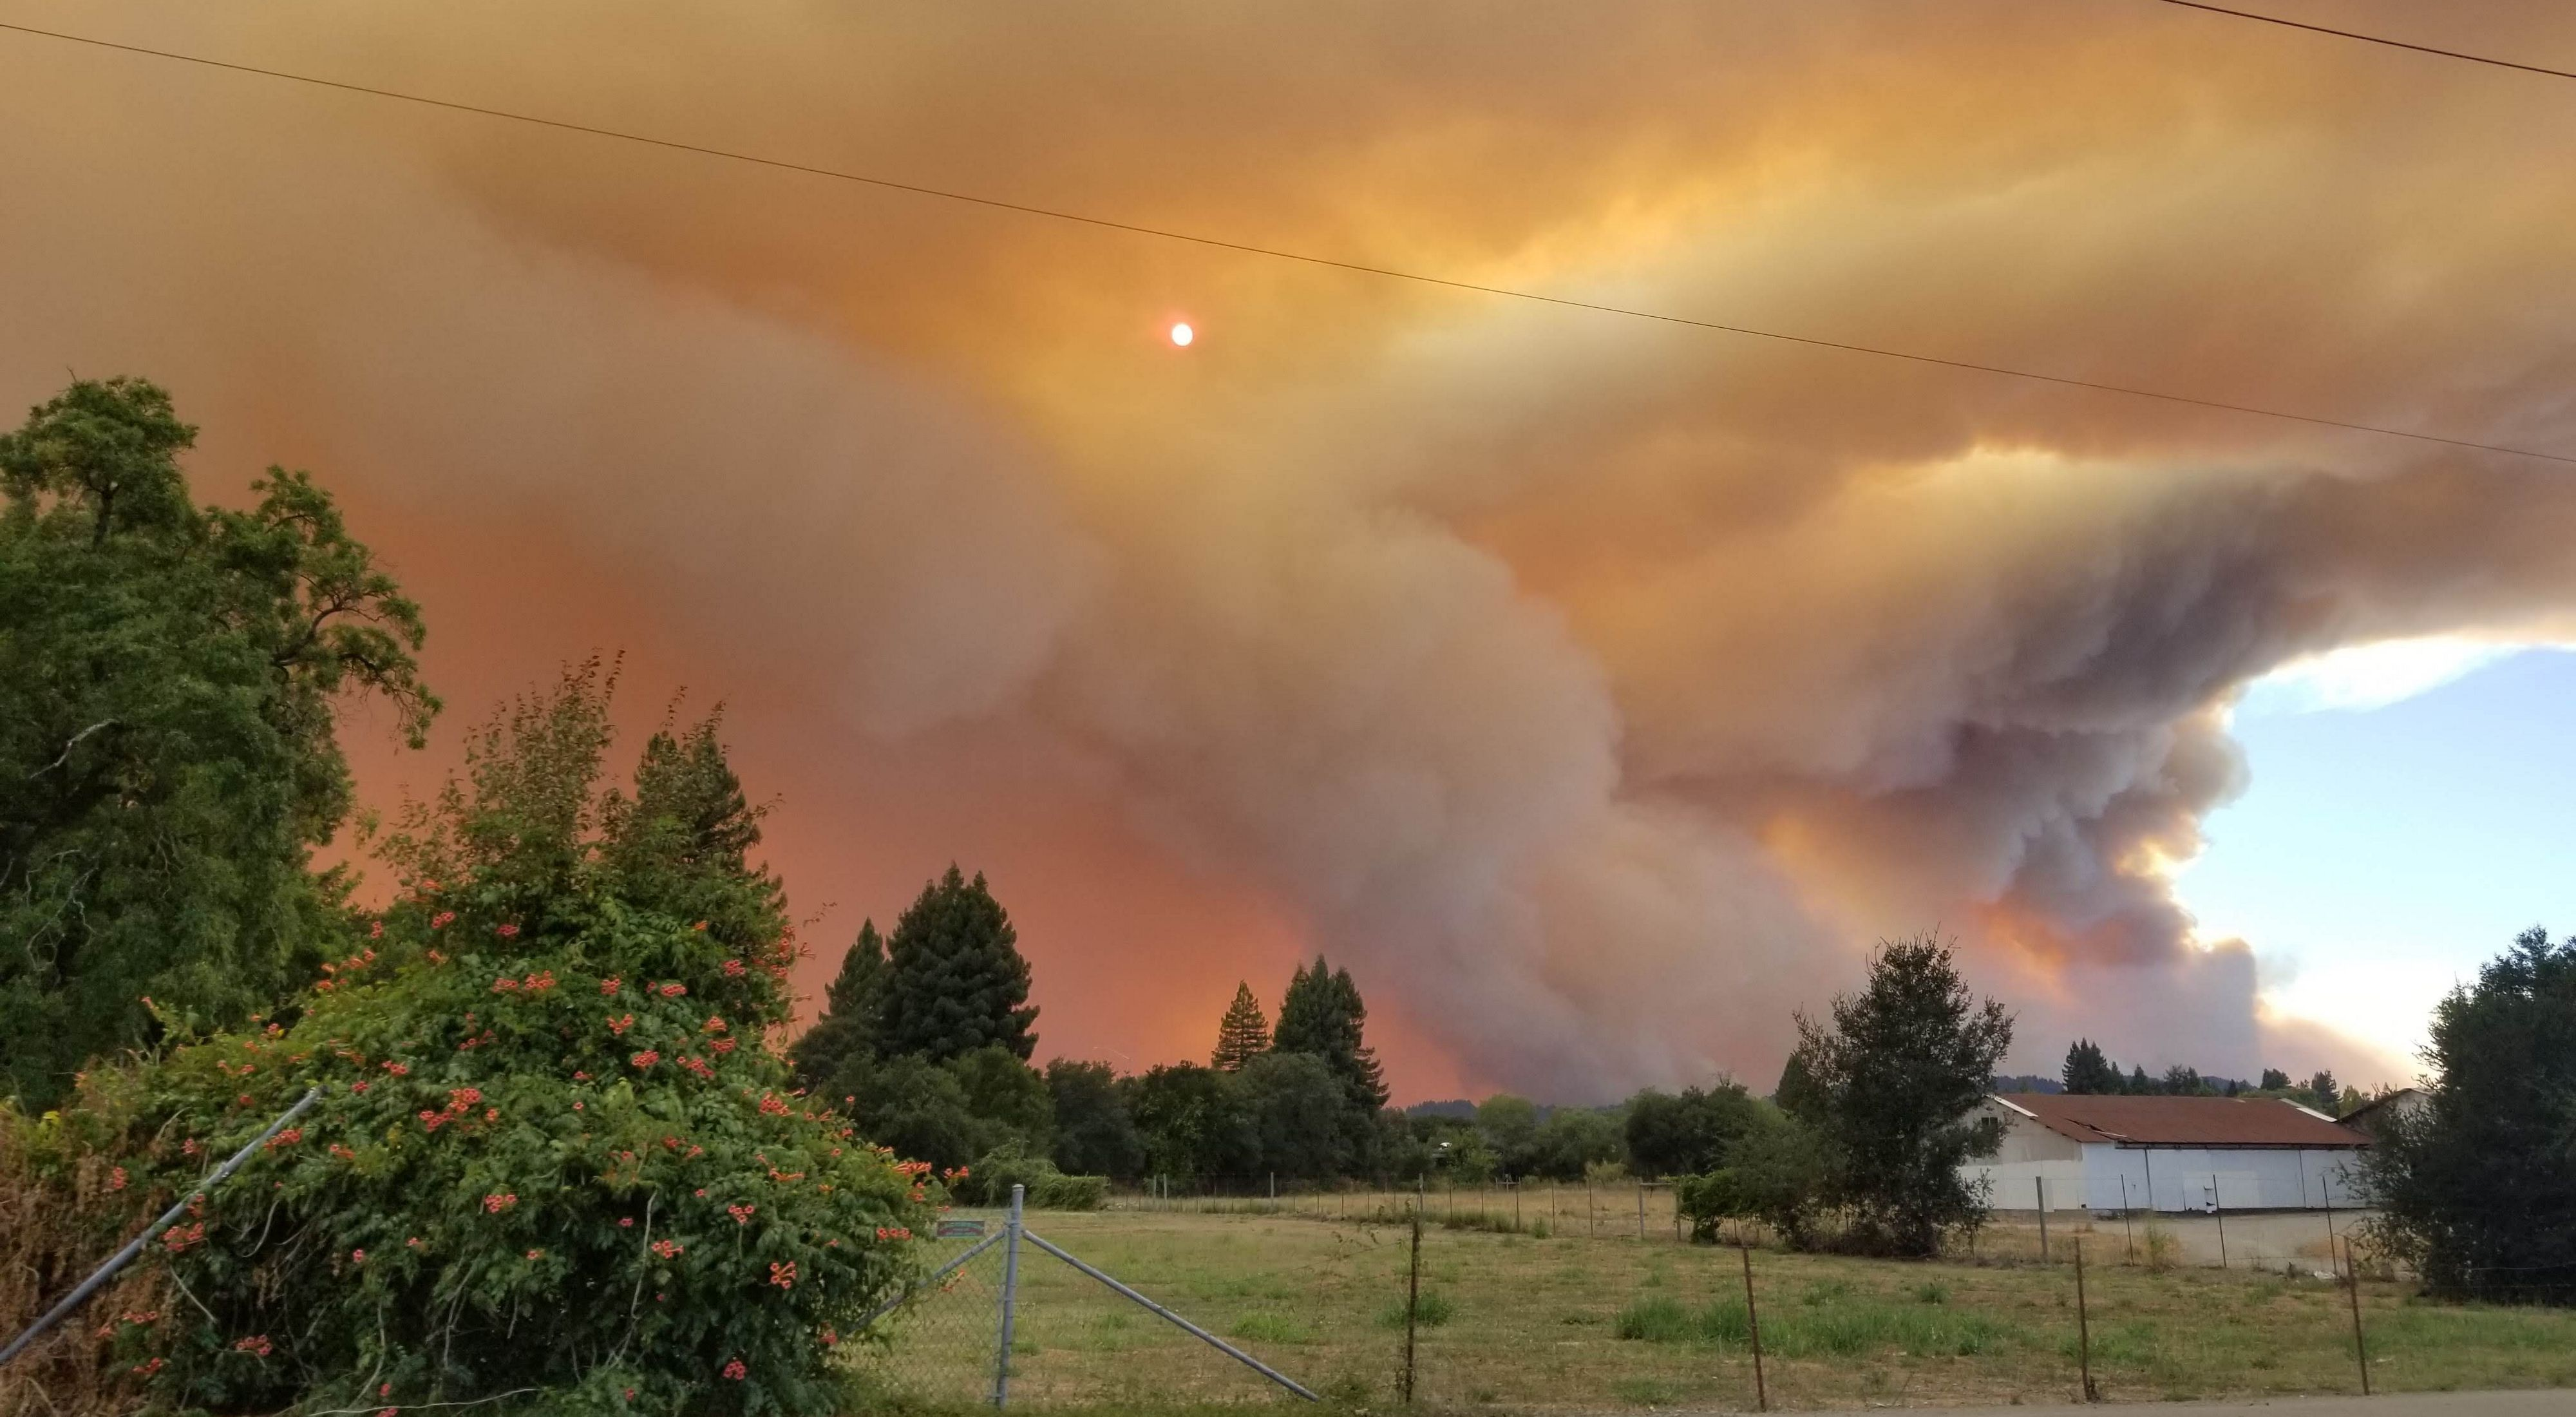 Large plumes of smoke sweeping through pine and oak forests in grassland meadows terrorizing the community in Healdsburg, California.